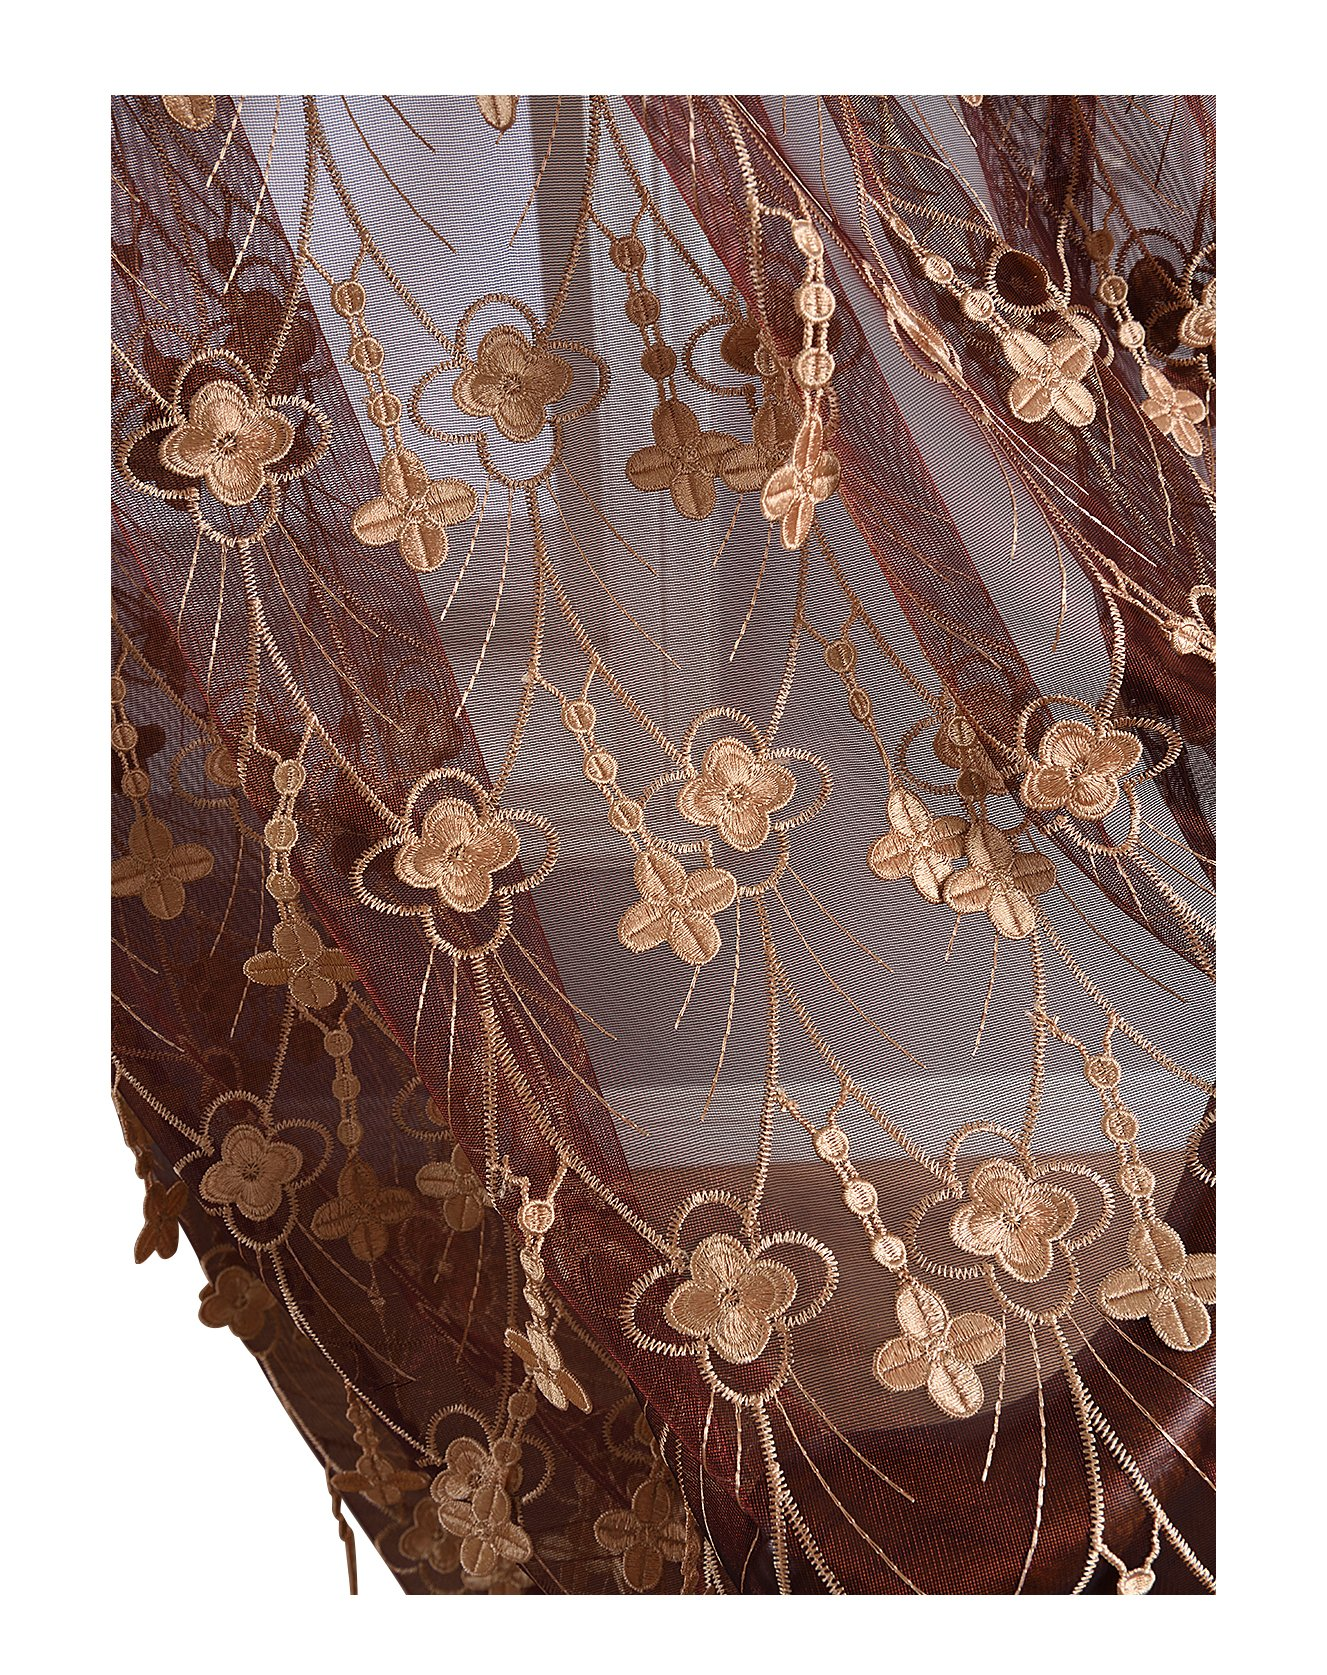 Aside Bside 4 Petals Floral Embroidered Sheer Curtains with Draping Embroidery Decorations Rod Pocket Top Brilliant Design (1 Panel, W 52 x L 104 inch, Red 6) -1281638521048506C1PGC by Aside Bside (Image #1)